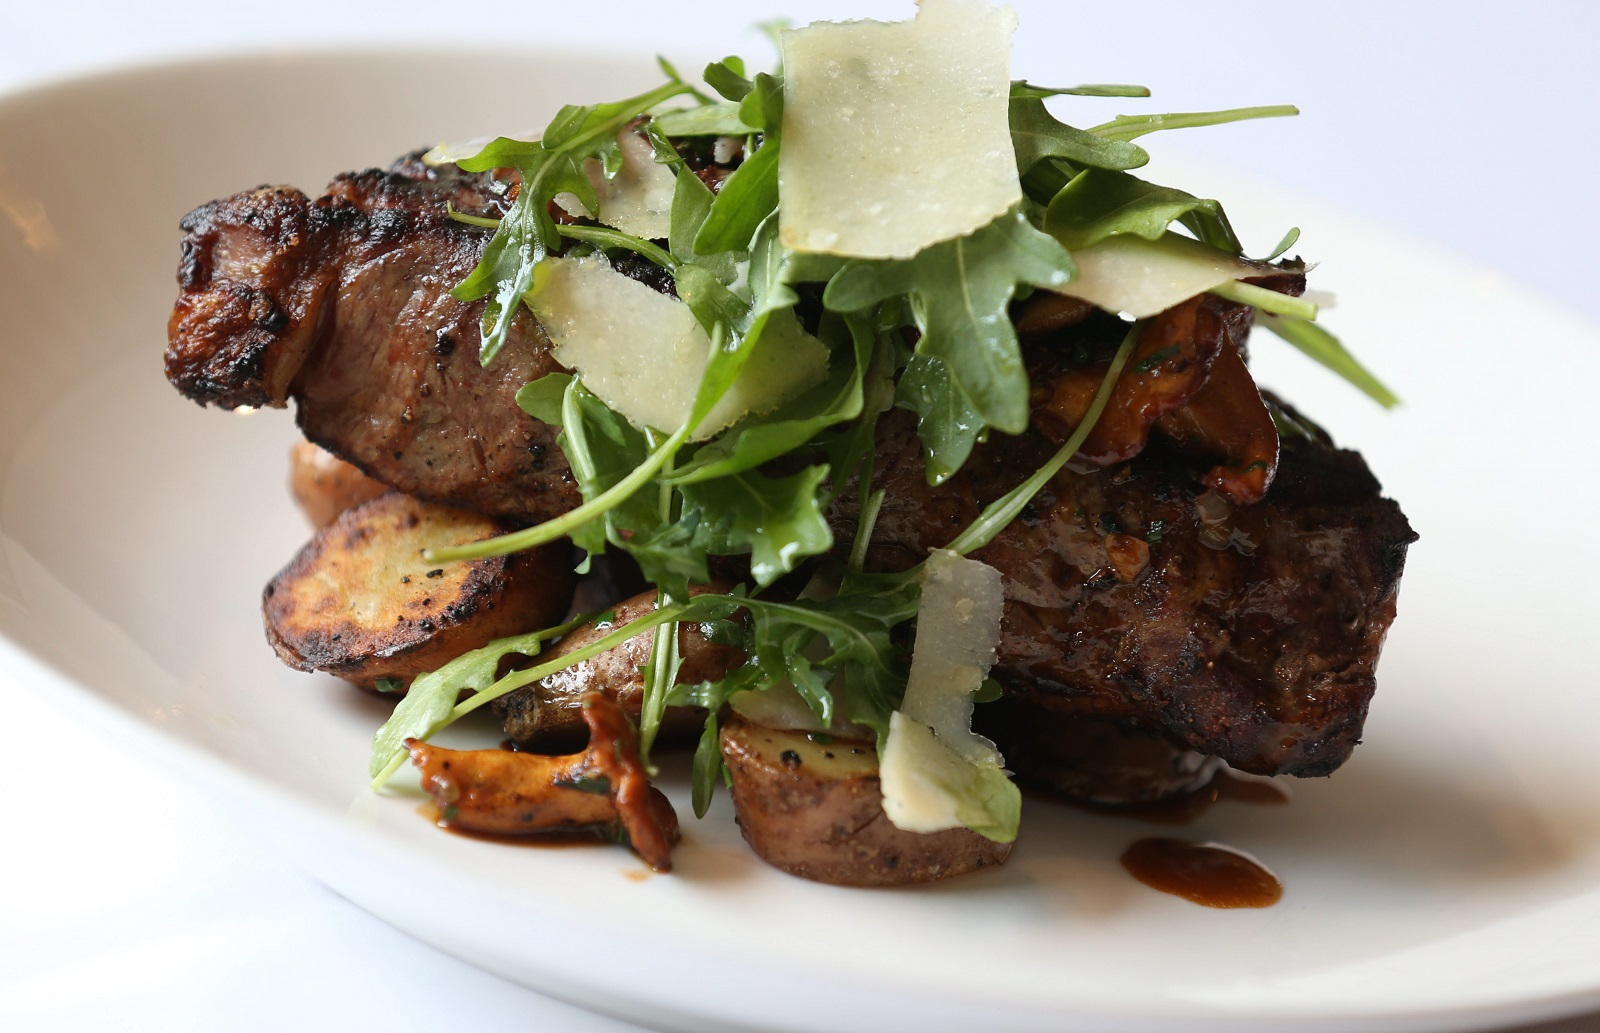 Tempo Restaurant is located at 581 Delaware Ave. in Buffalo.  This is the 28-day dry aged NY strip with fingerling potatoes, wild hedgehog mushrooms, arugula and parmesan.  Photo taken, Wednesday, March 11, 2015.  (Sharon Cantillon/Buffalo News)